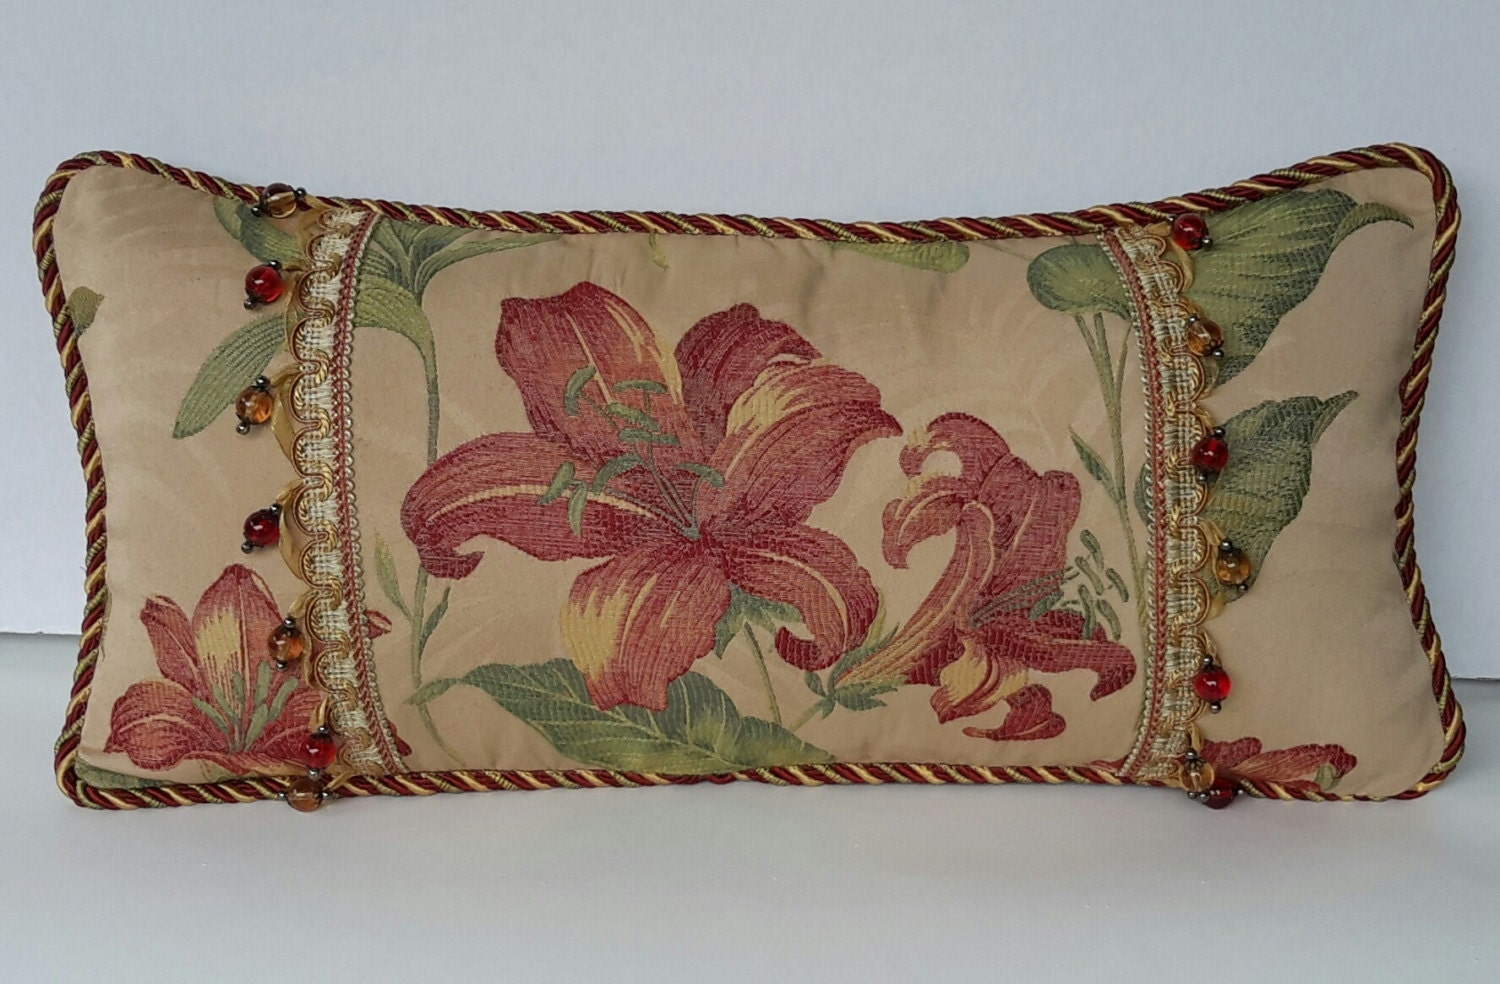 Red And Beige Throw Pillows : Beige Red Tropical Floral Pillow Designer Lumbar Pillow